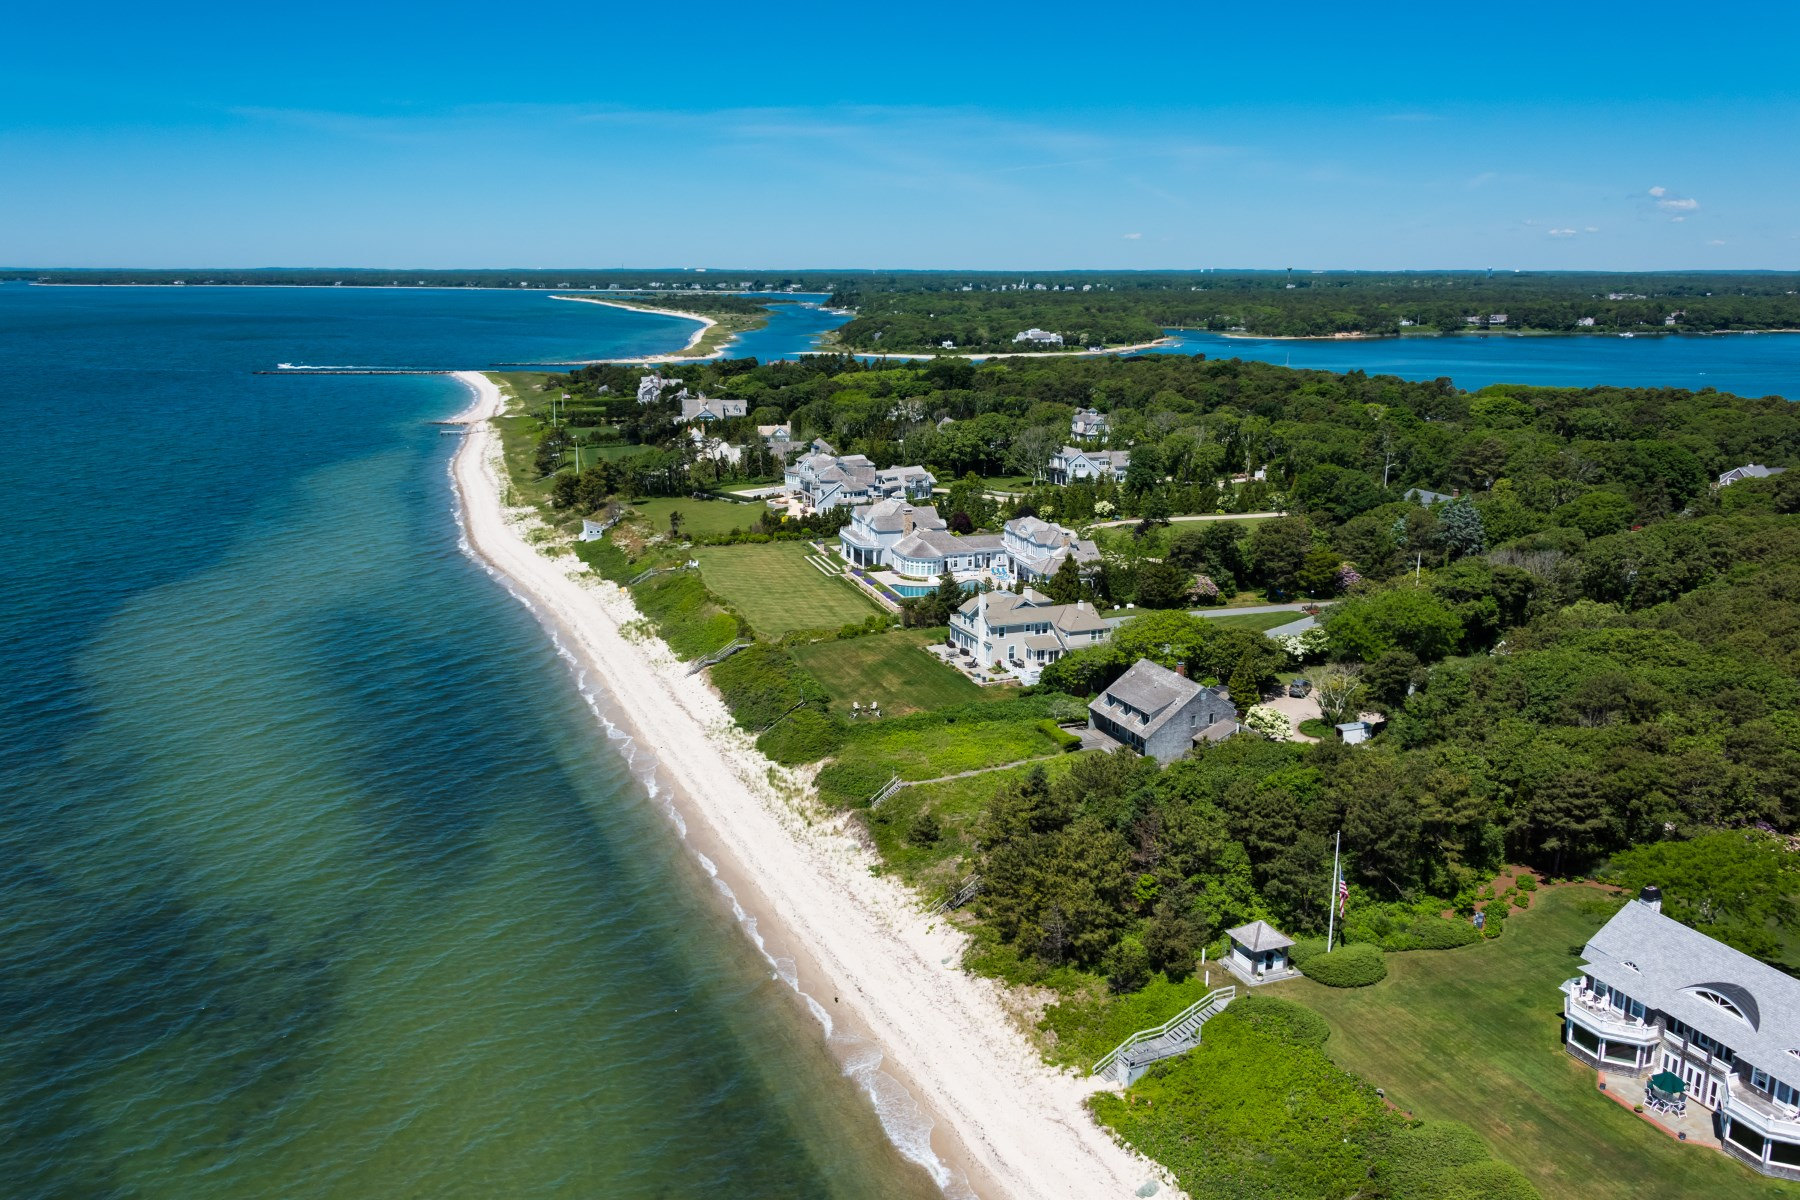 Single Family Home for Sale at Magnificent Sea View Avenue Estate 807 Sea View Ave Osterville, Massachusetts, 02655 United States